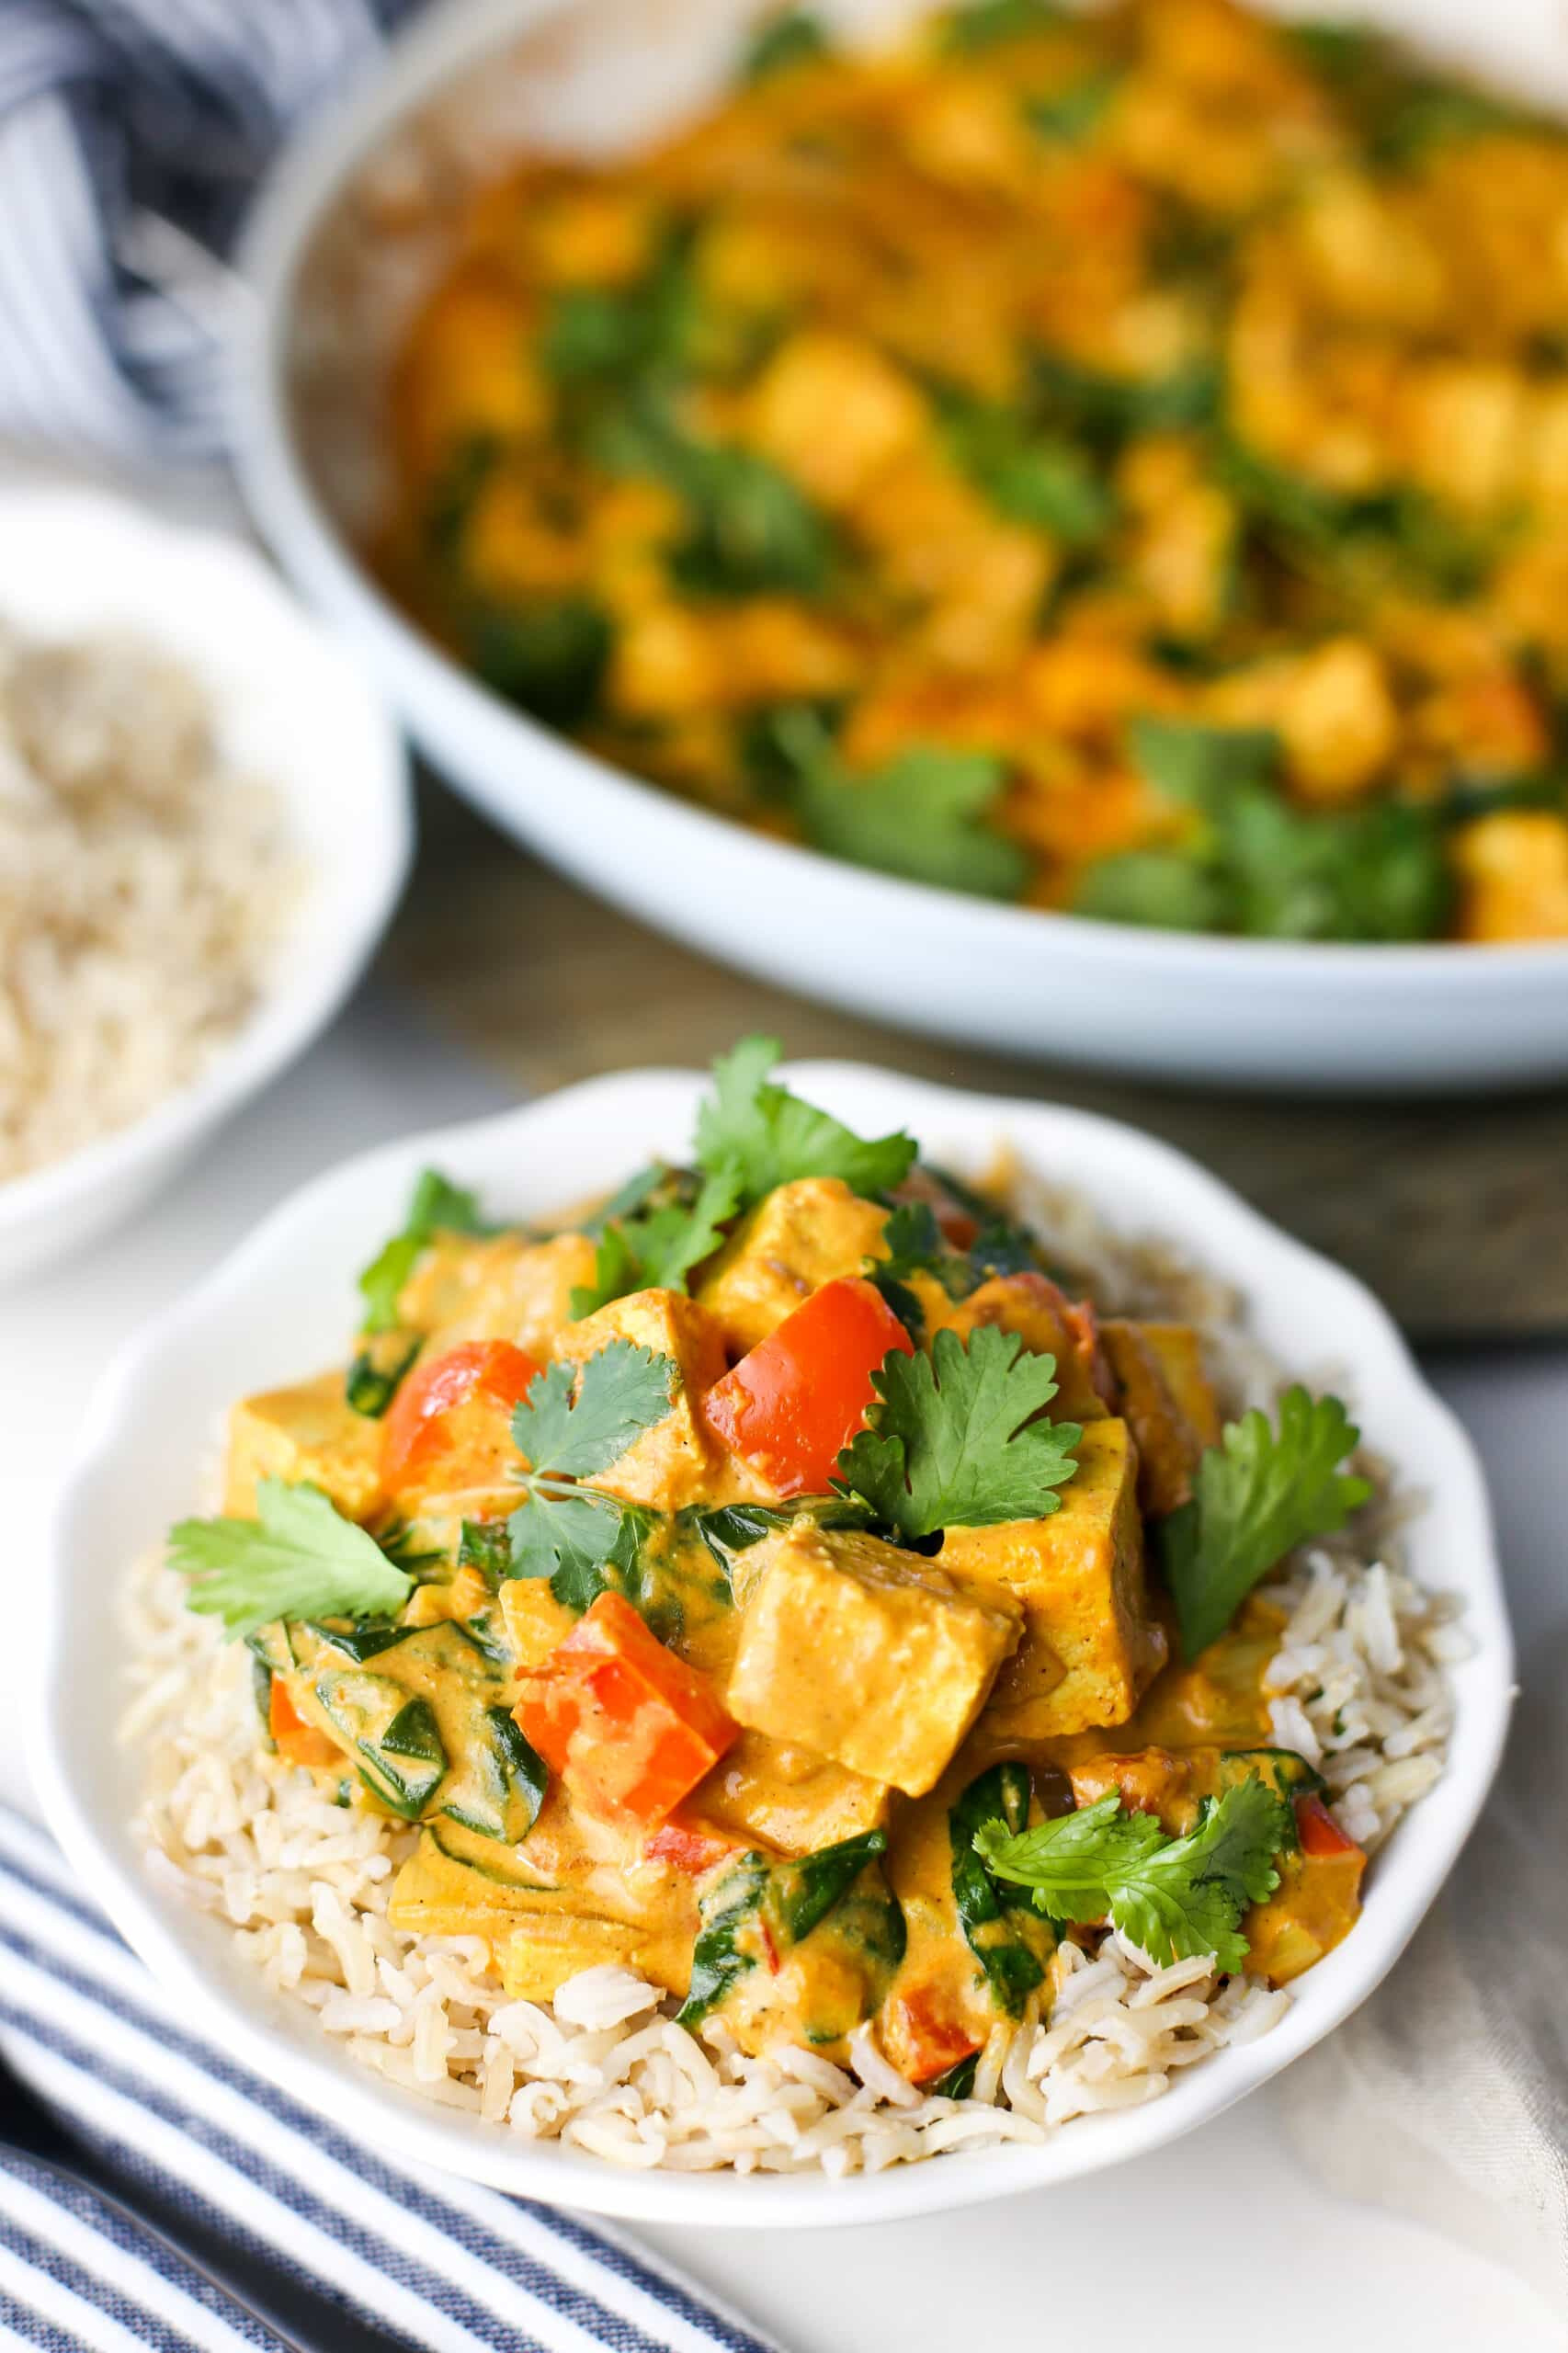 Delicious tofu coconut curry with fresh cilantro on top of brown rice in a white bowl.